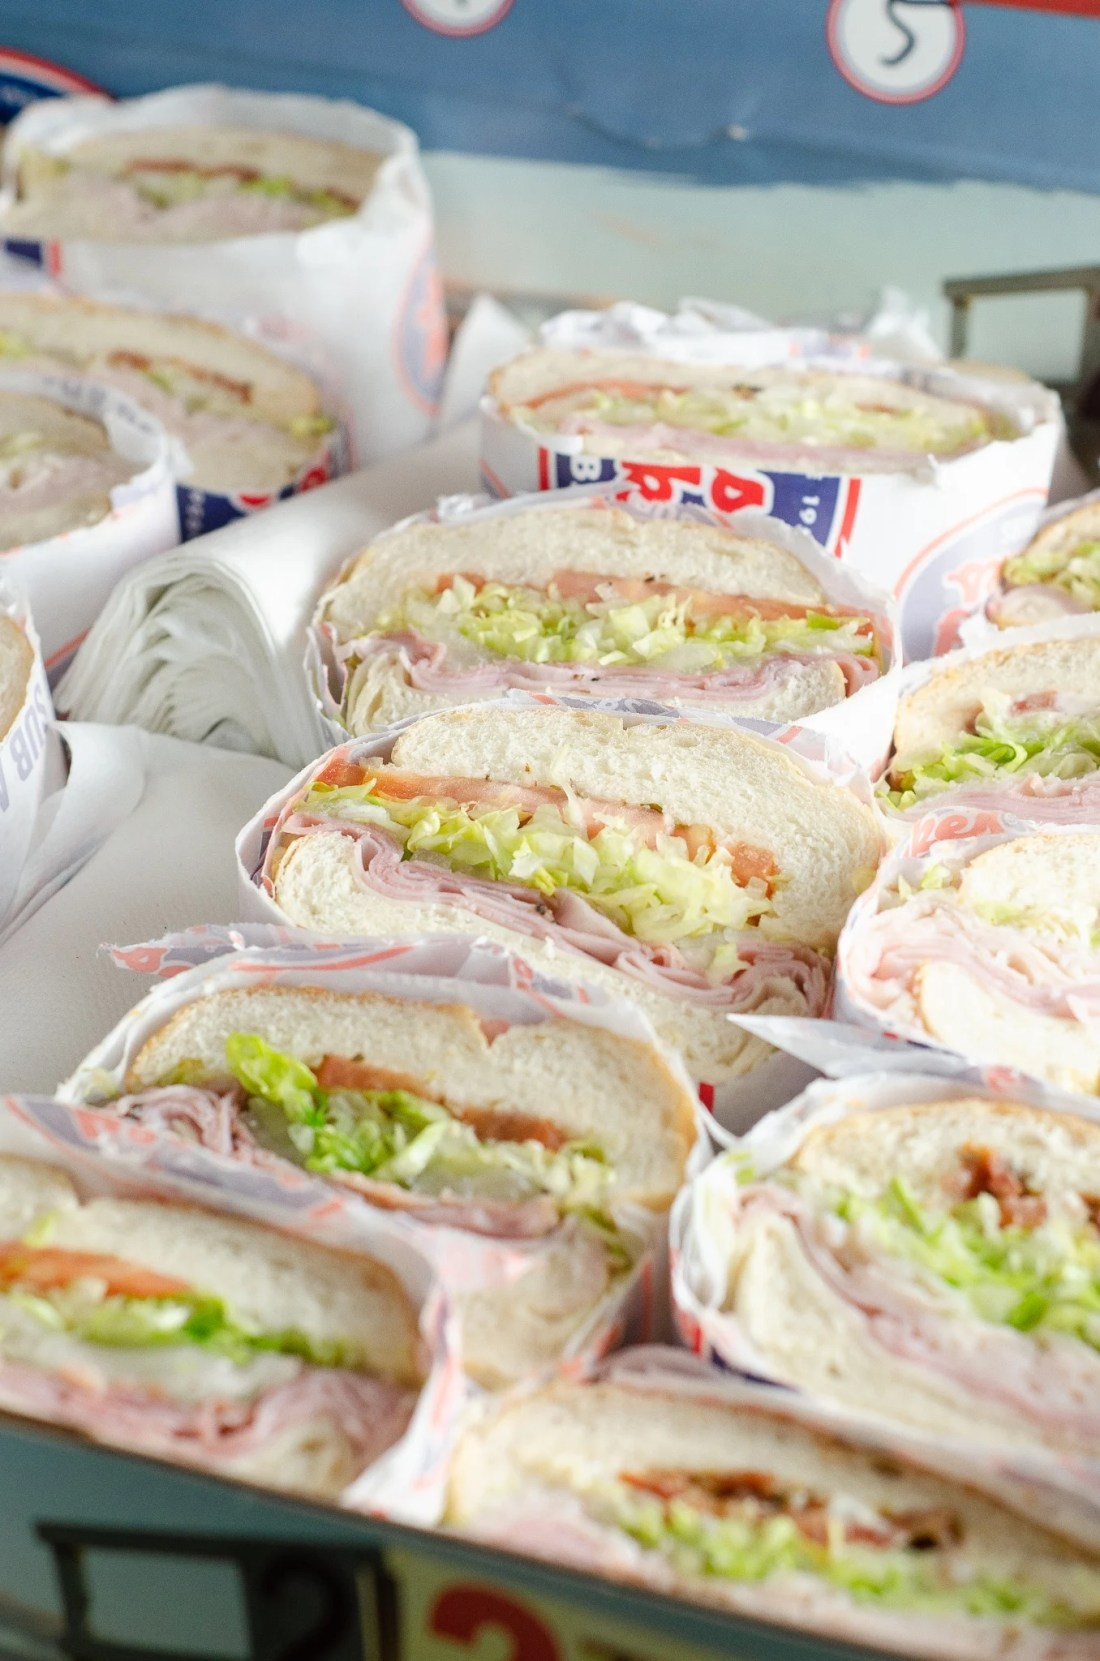 Jersey Mikes Catering Box Subs. Stop stressing about what everyone will be eating on the Big Game Day. Take advantage of some awesome No-Cook Easy Game Day Snack Idea's on the blog now.